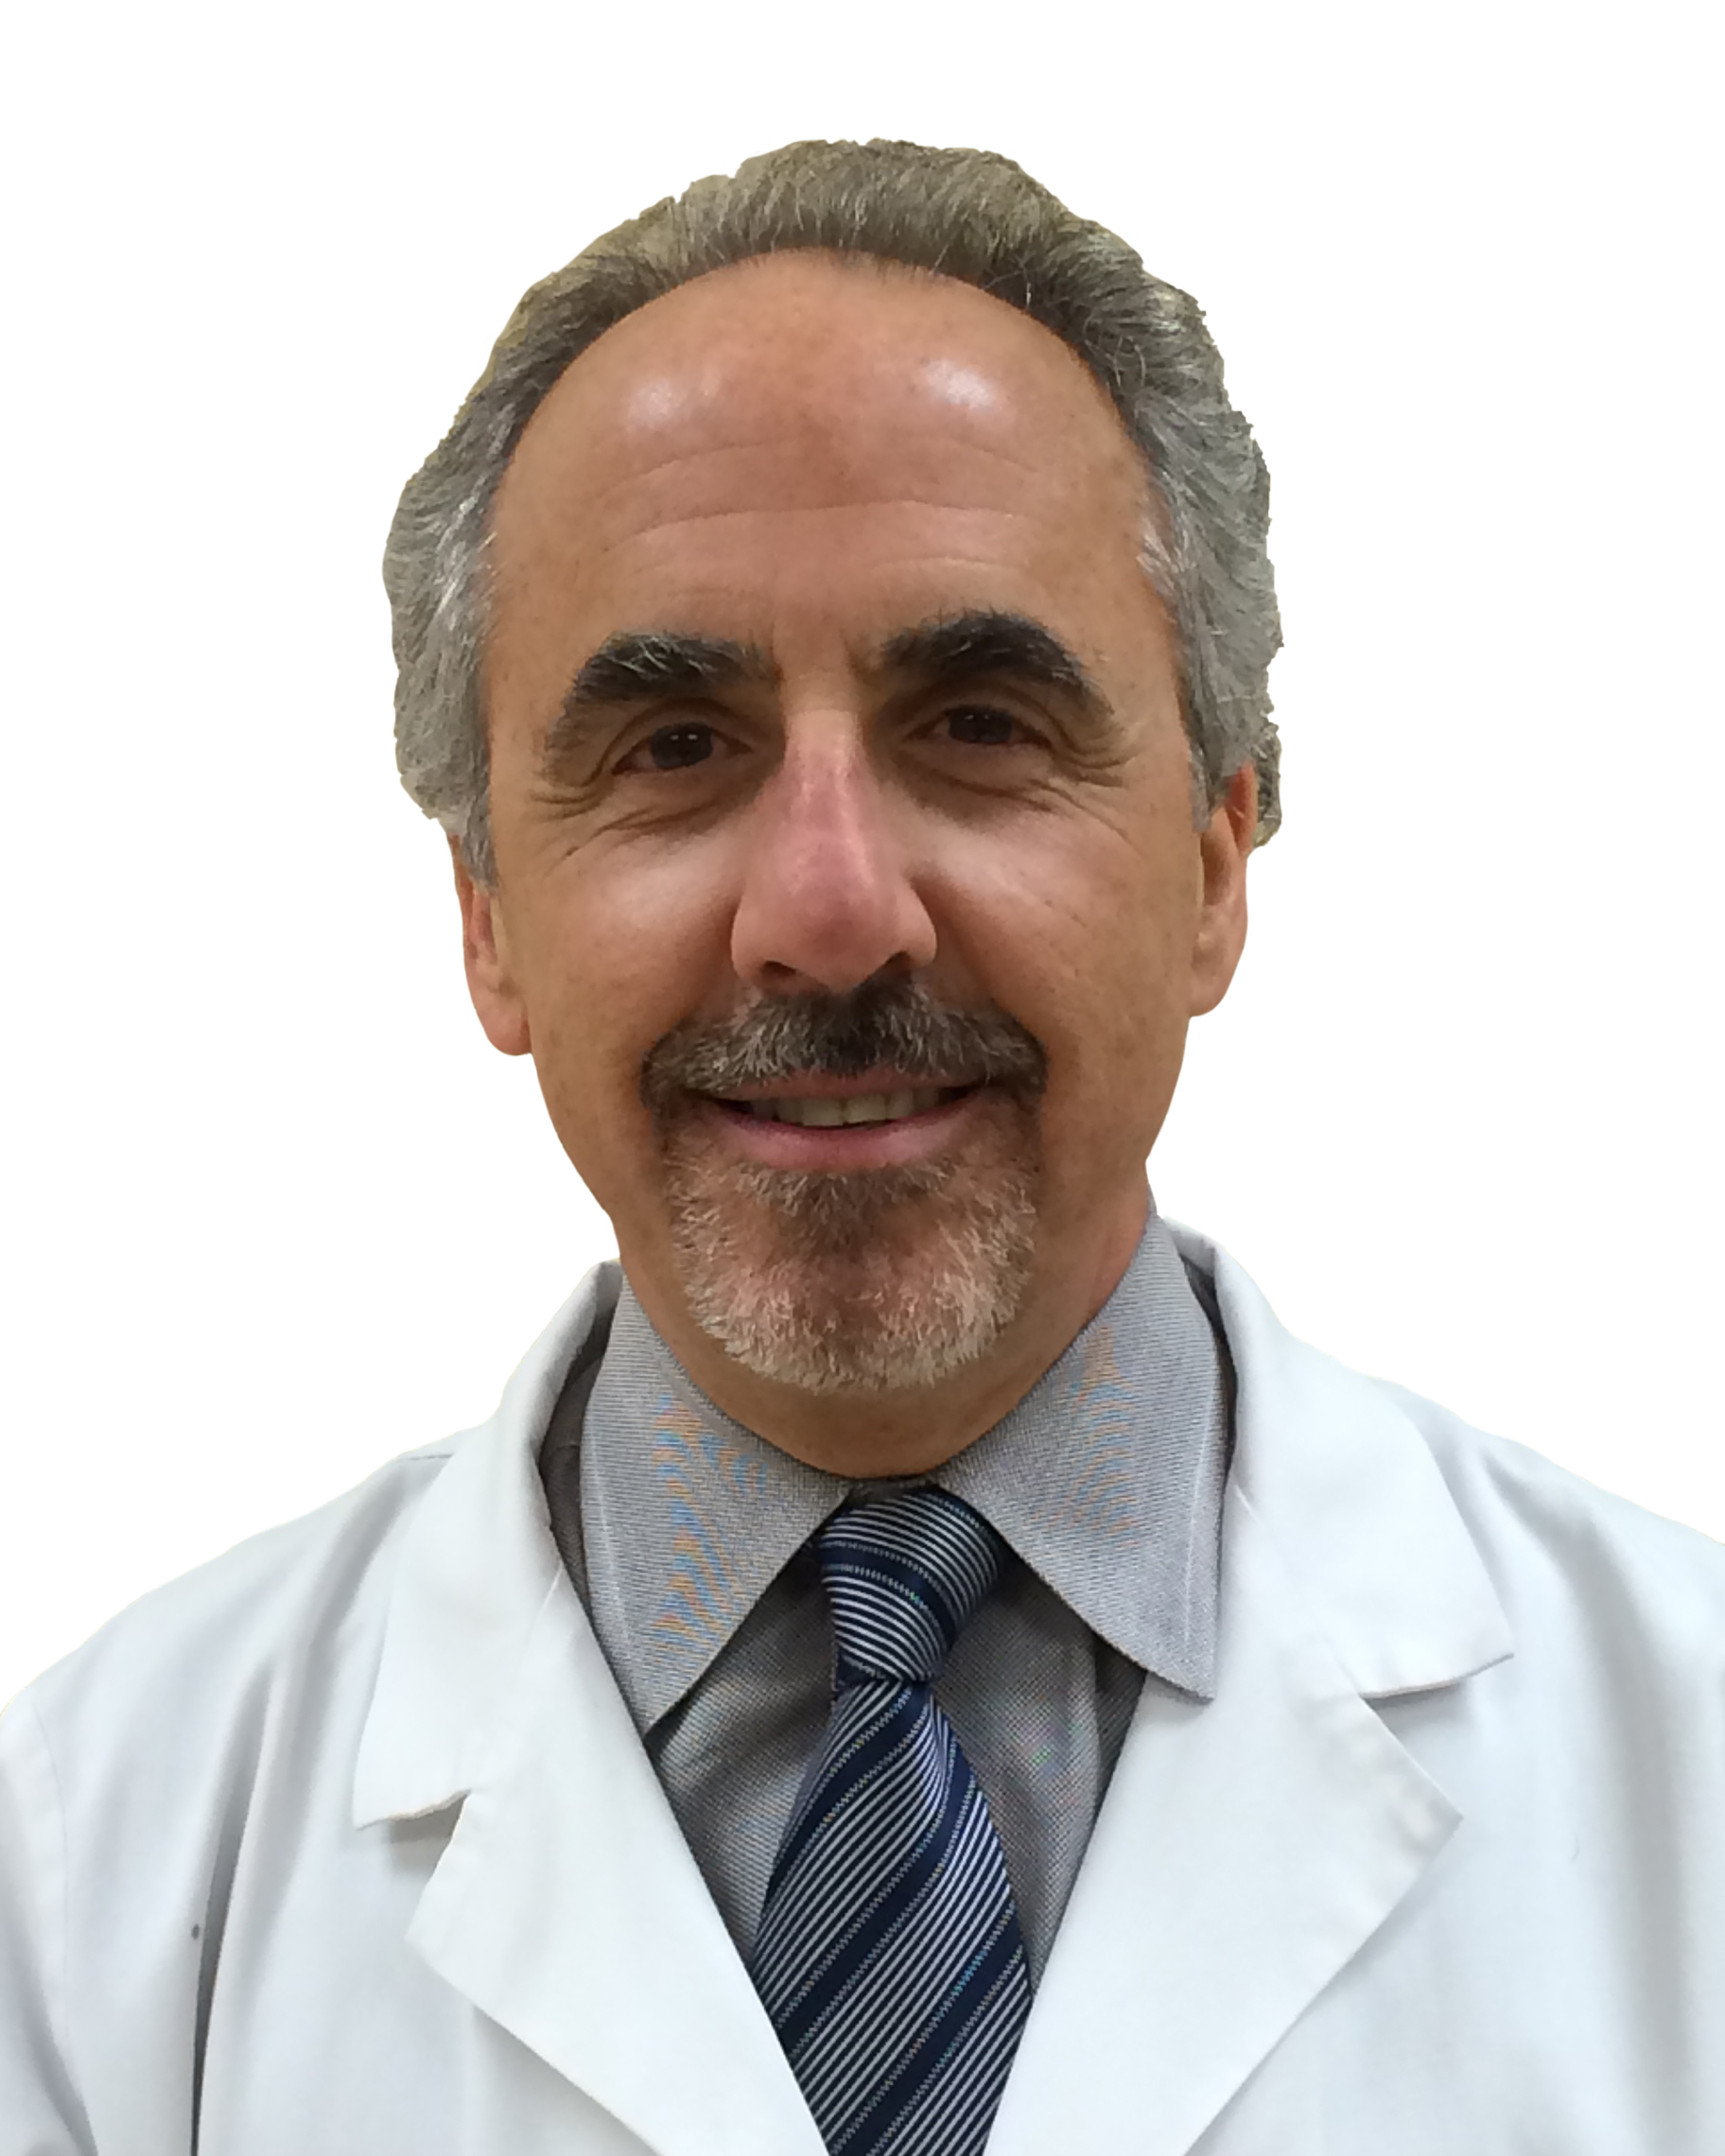 Dr. Gary Karlin Urologist Lawrenceville NJ